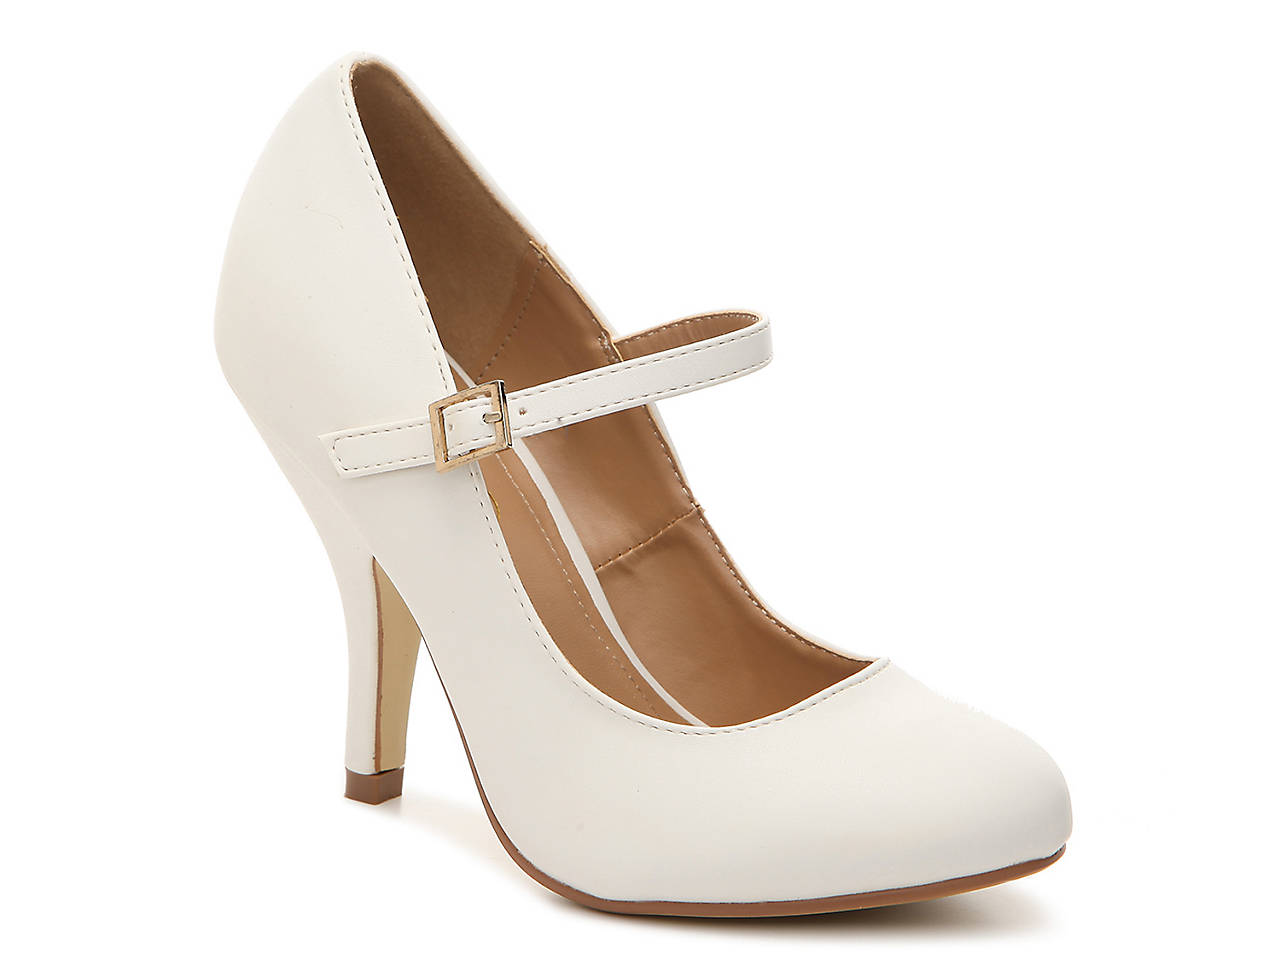 Journee Collection Lezly Pump Women's Shoes | DSW